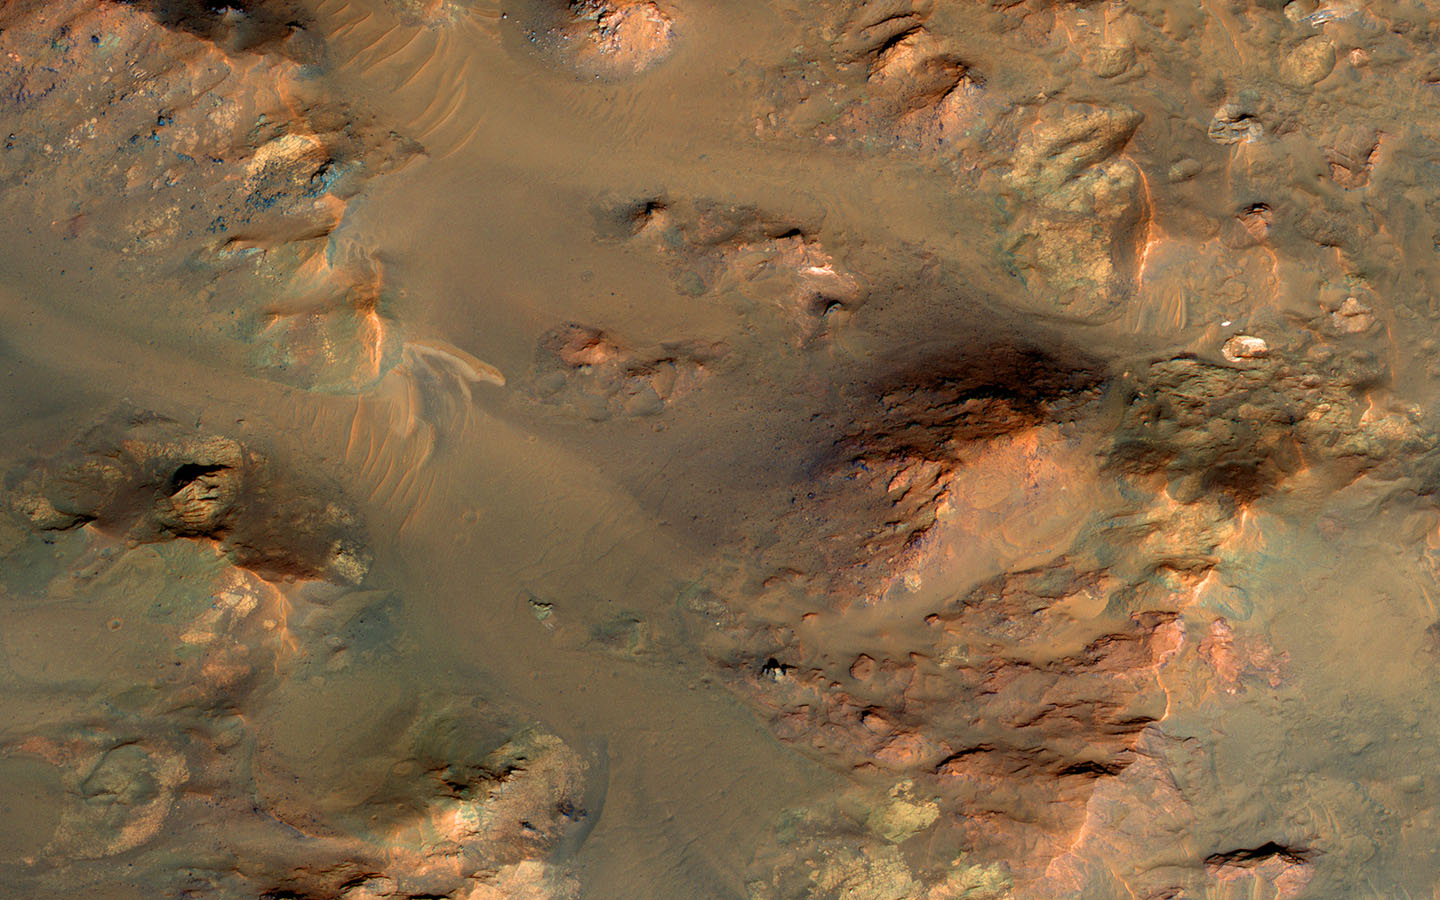 This image from NASA's Mars Reconnaissance Orbiter shows part of the central uplifted region of an impact crater more than 50 kilometers wide.